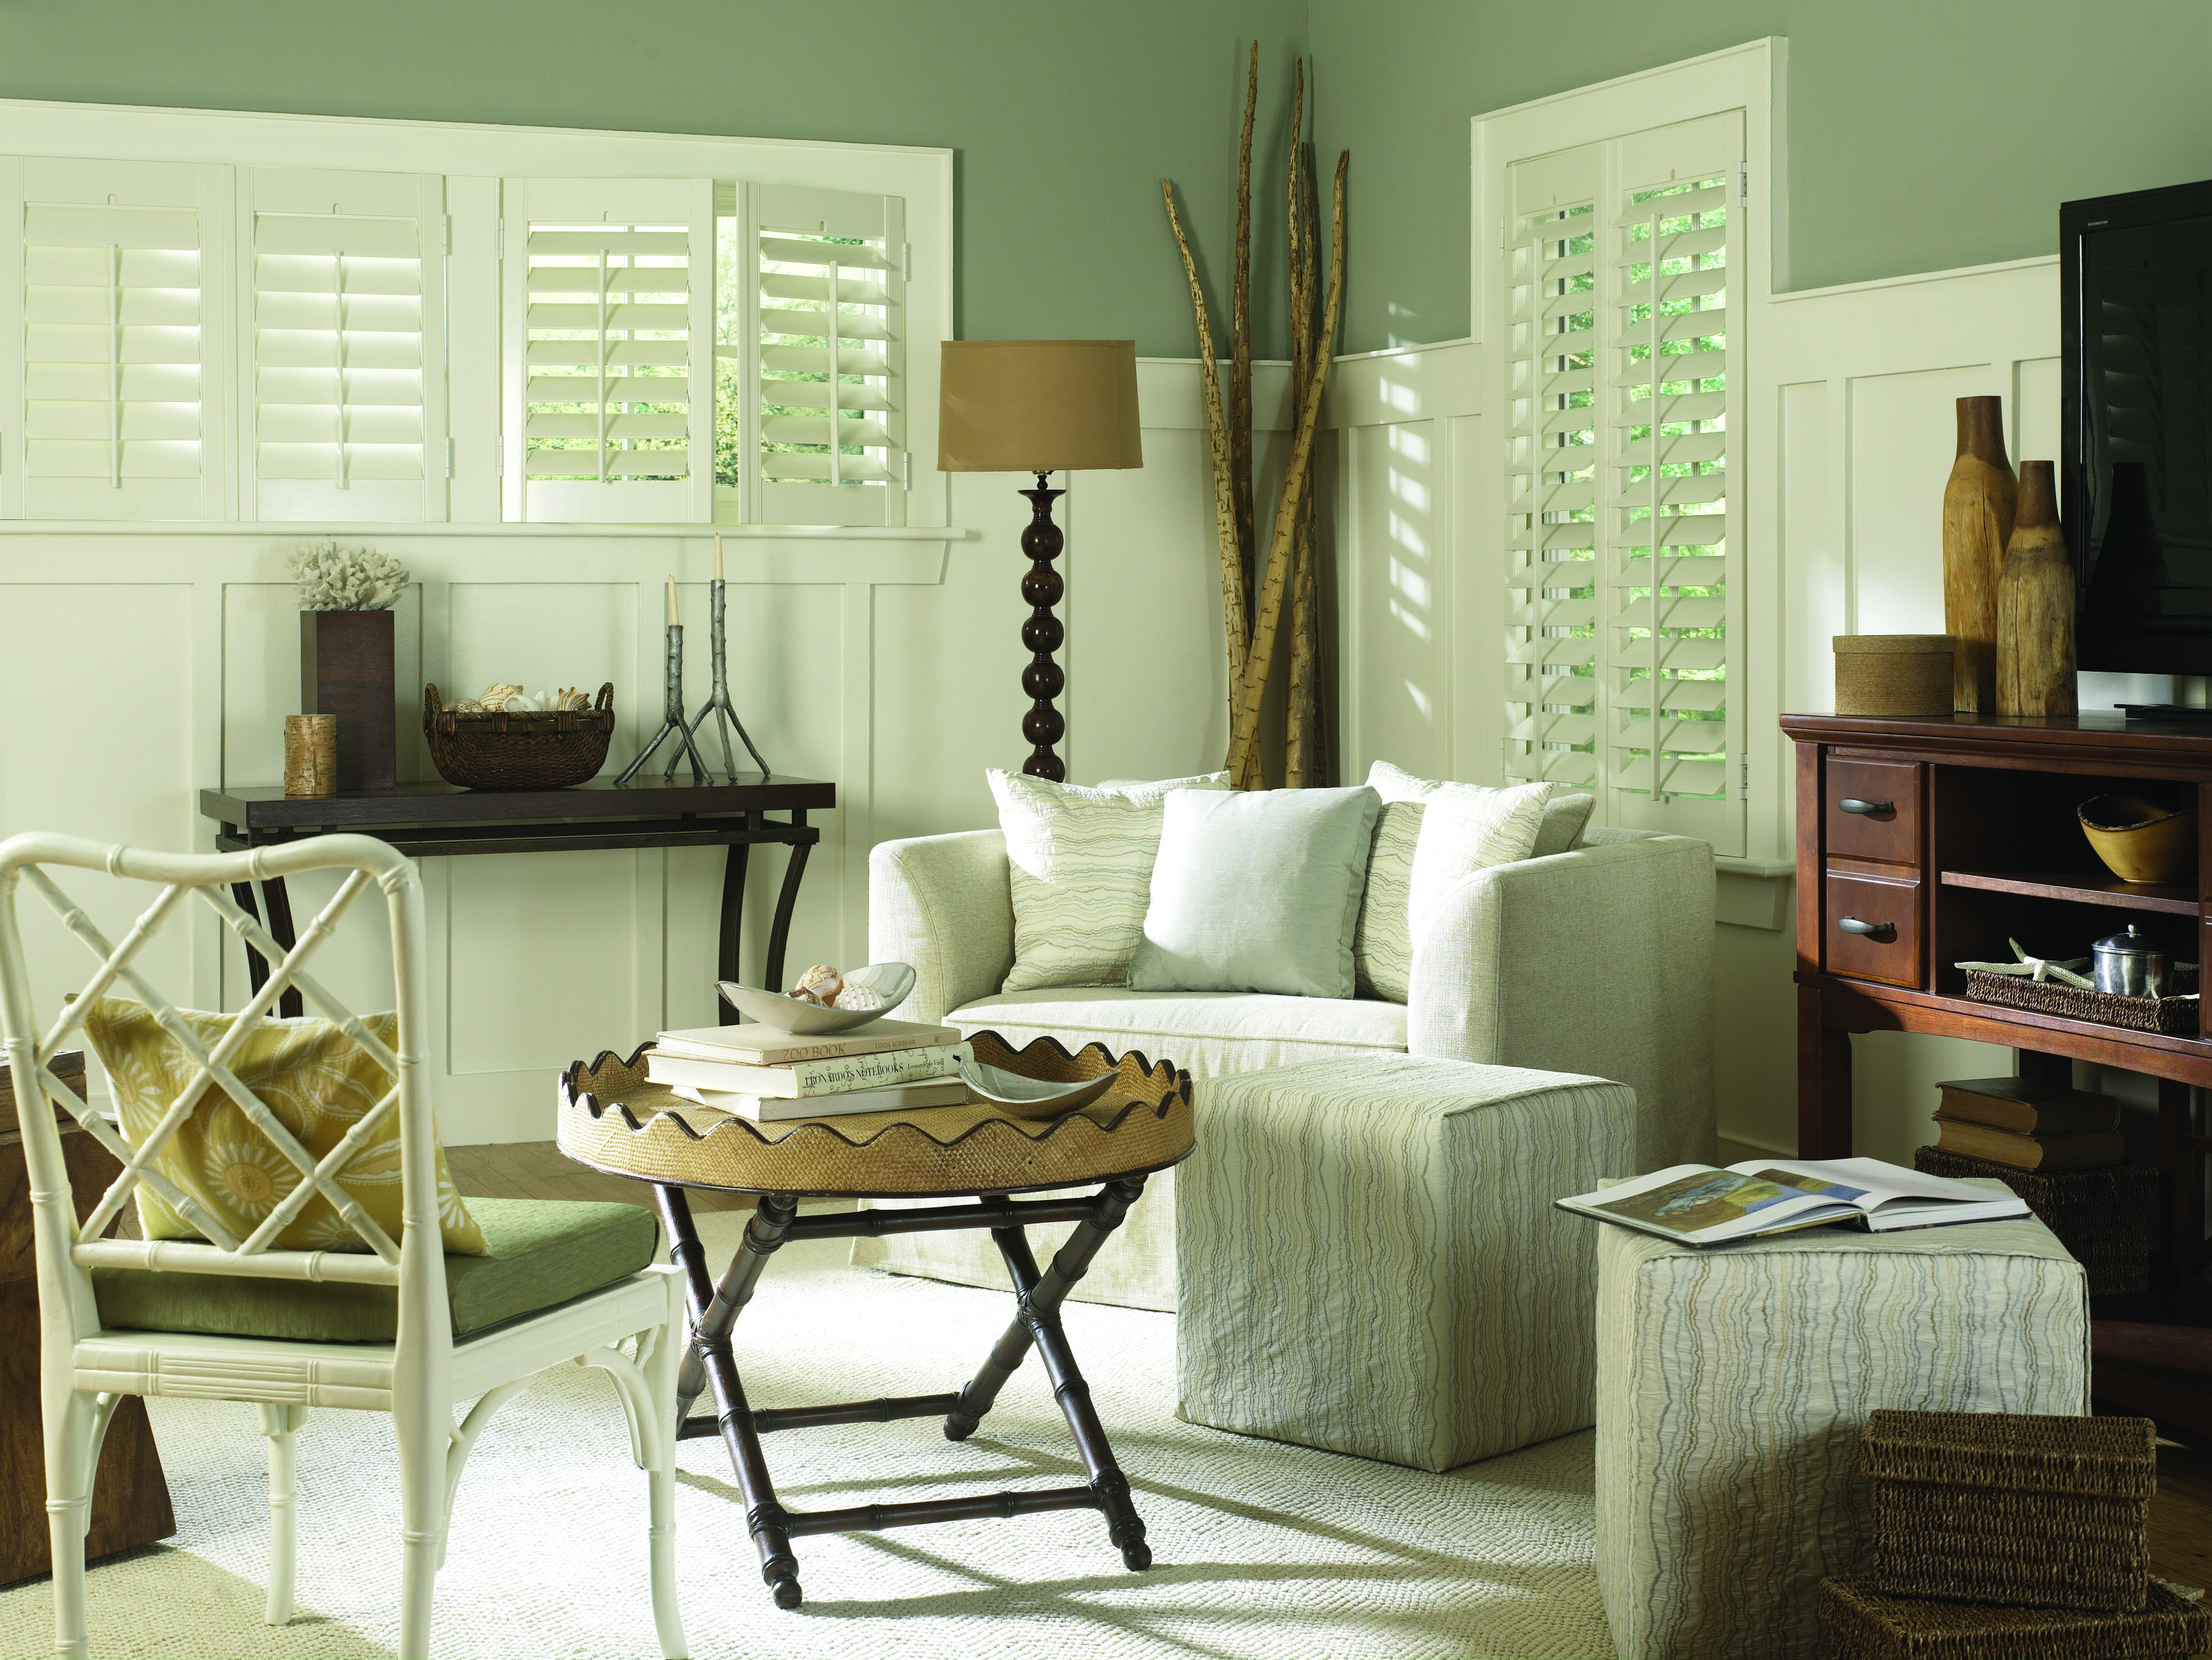 chester hidden hunter mawr shutters douglas wood in bryn with norman split delaware interior composite tilt montgomery county plantation pa